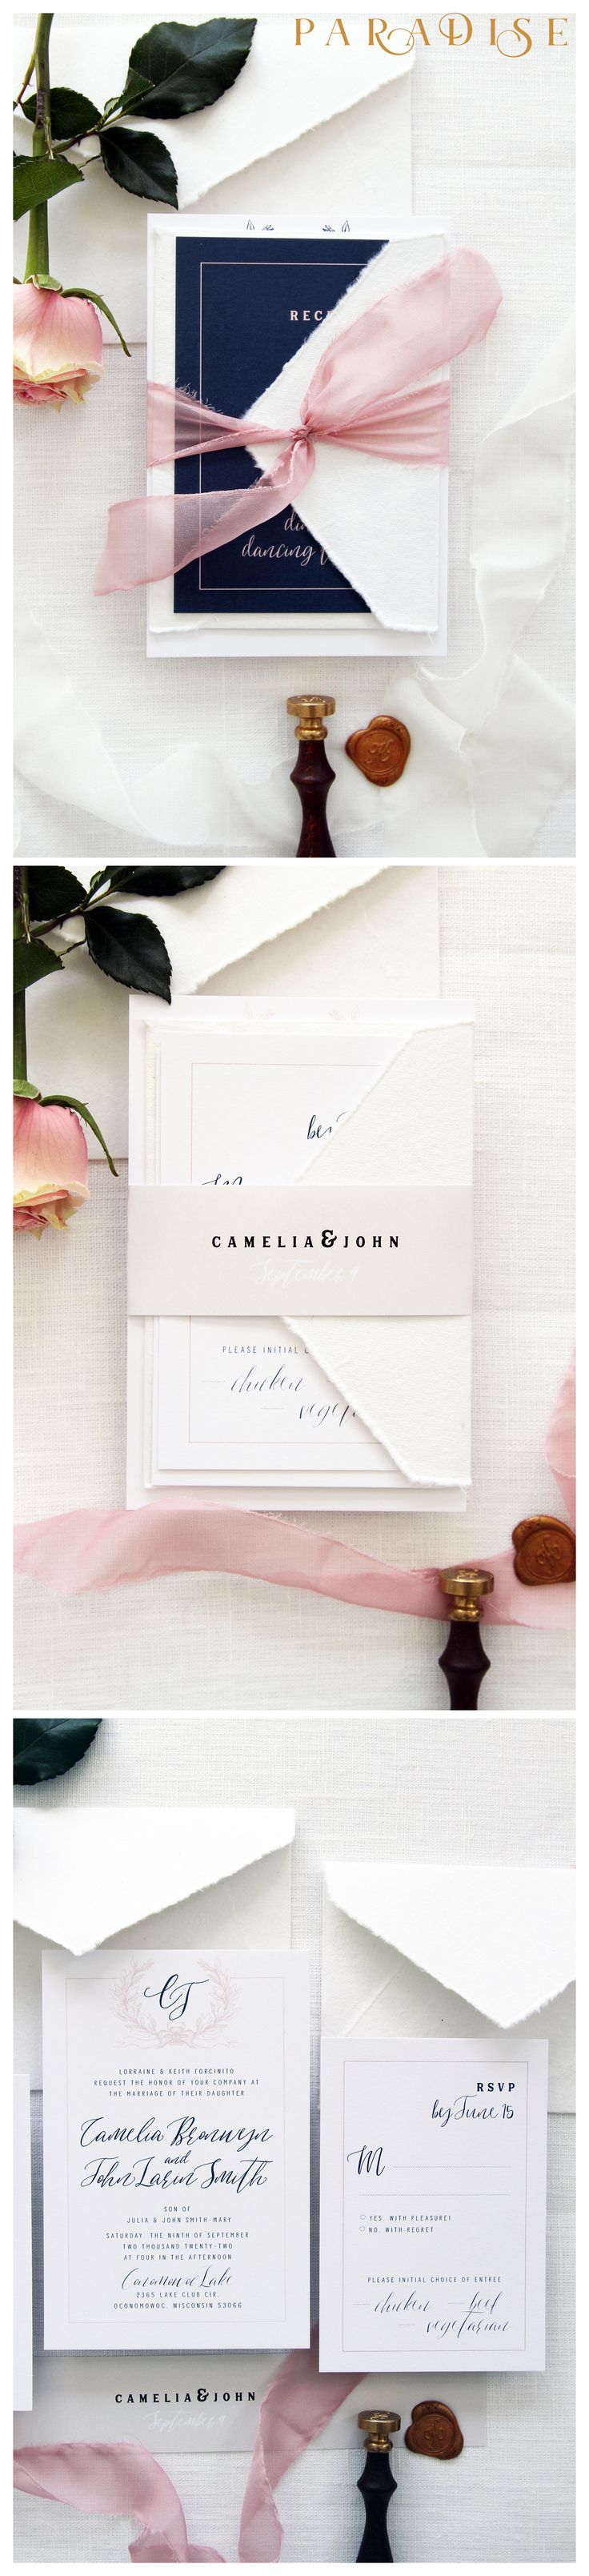 handmade wedding cards ireland%0A Camelia   Wedding Invitation Sets  Invitation Set Templates or Printed  Invitation Sets  Handmade Envelopes